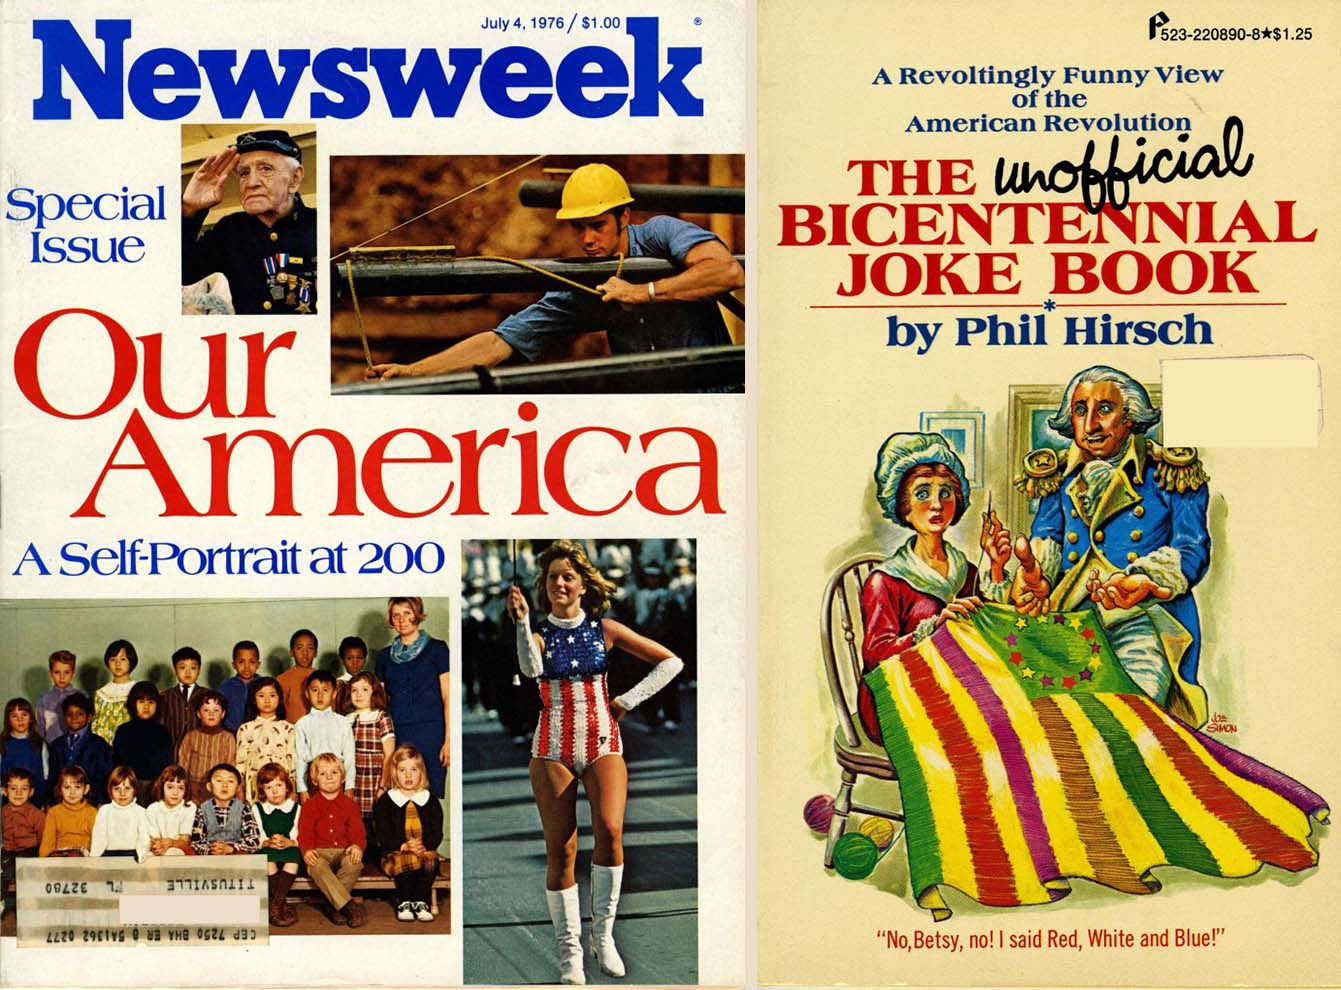 Newsweek-Cover-July-4-1976-min-768x1031